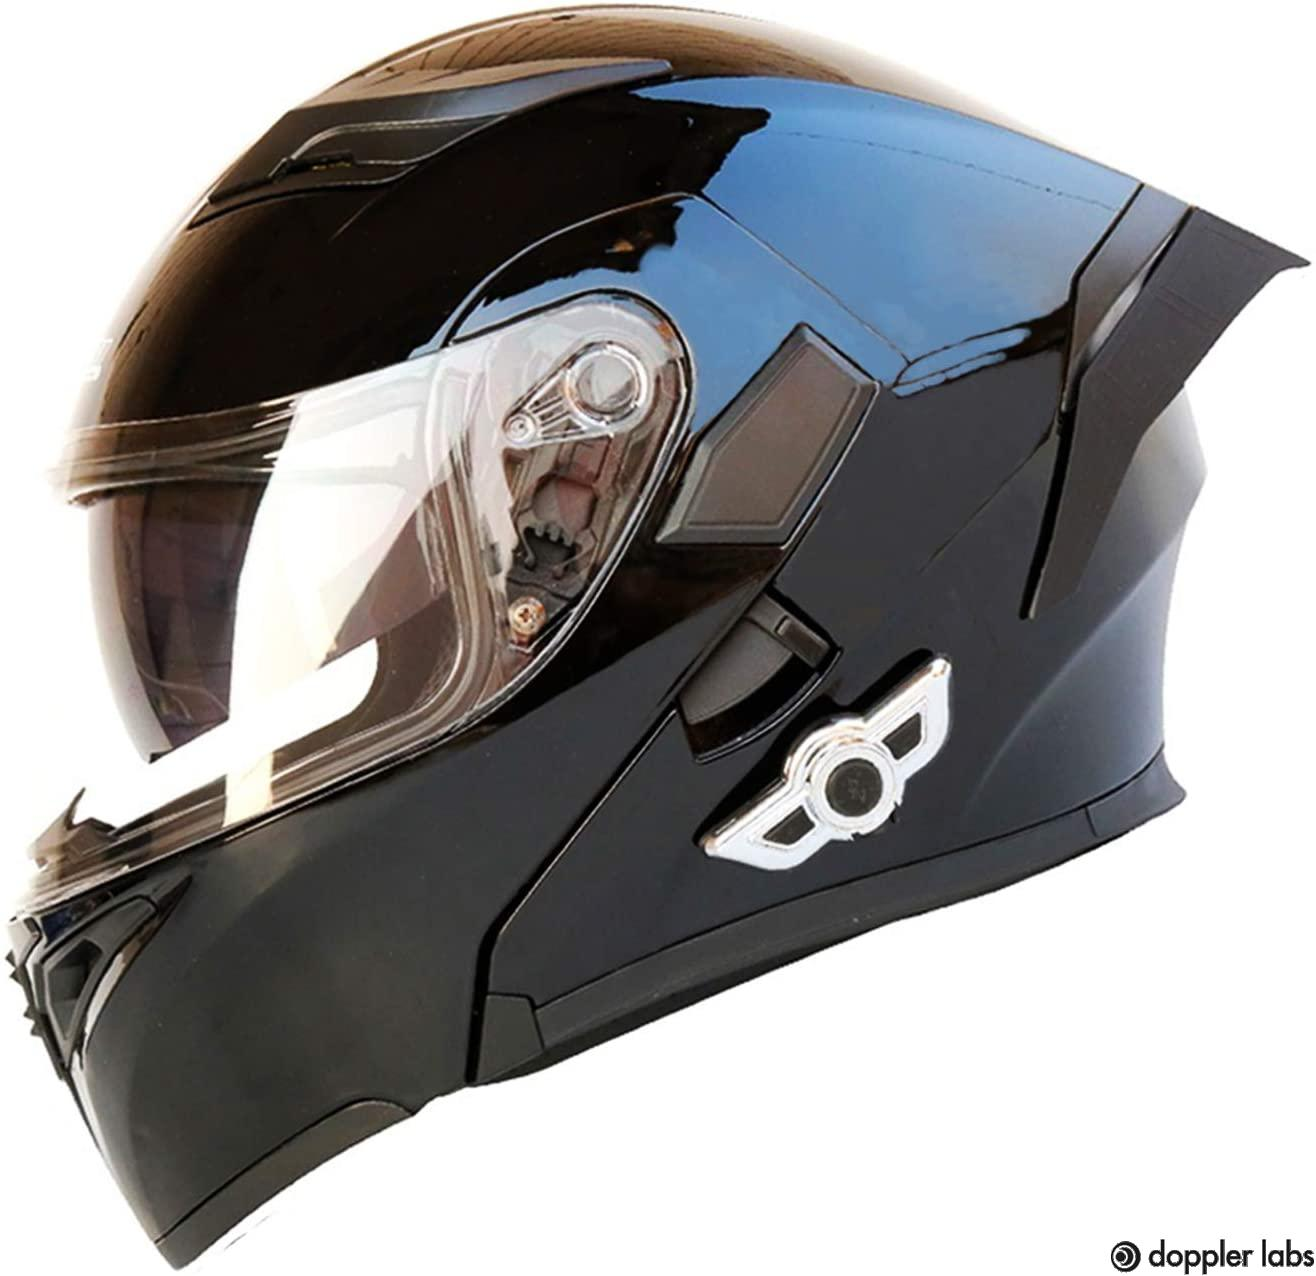 Bluetooth helmets are worth trying